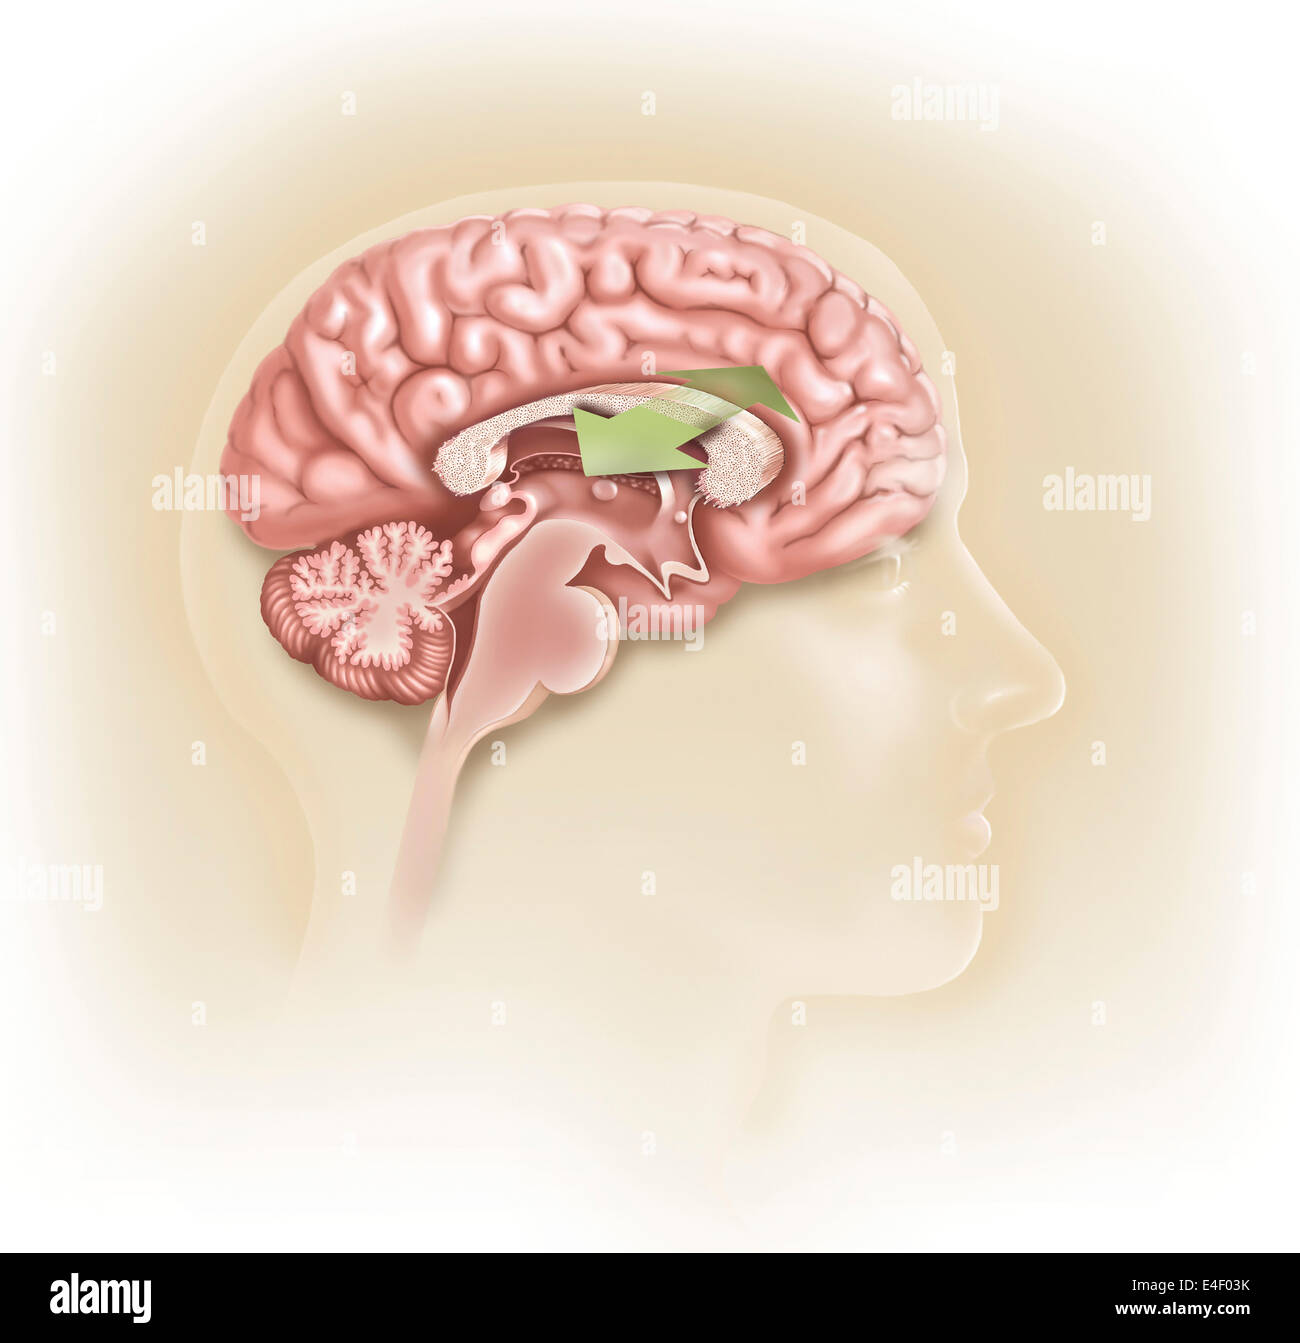 Sagittal view of human brain showing the corpus callosum. - Stock Image